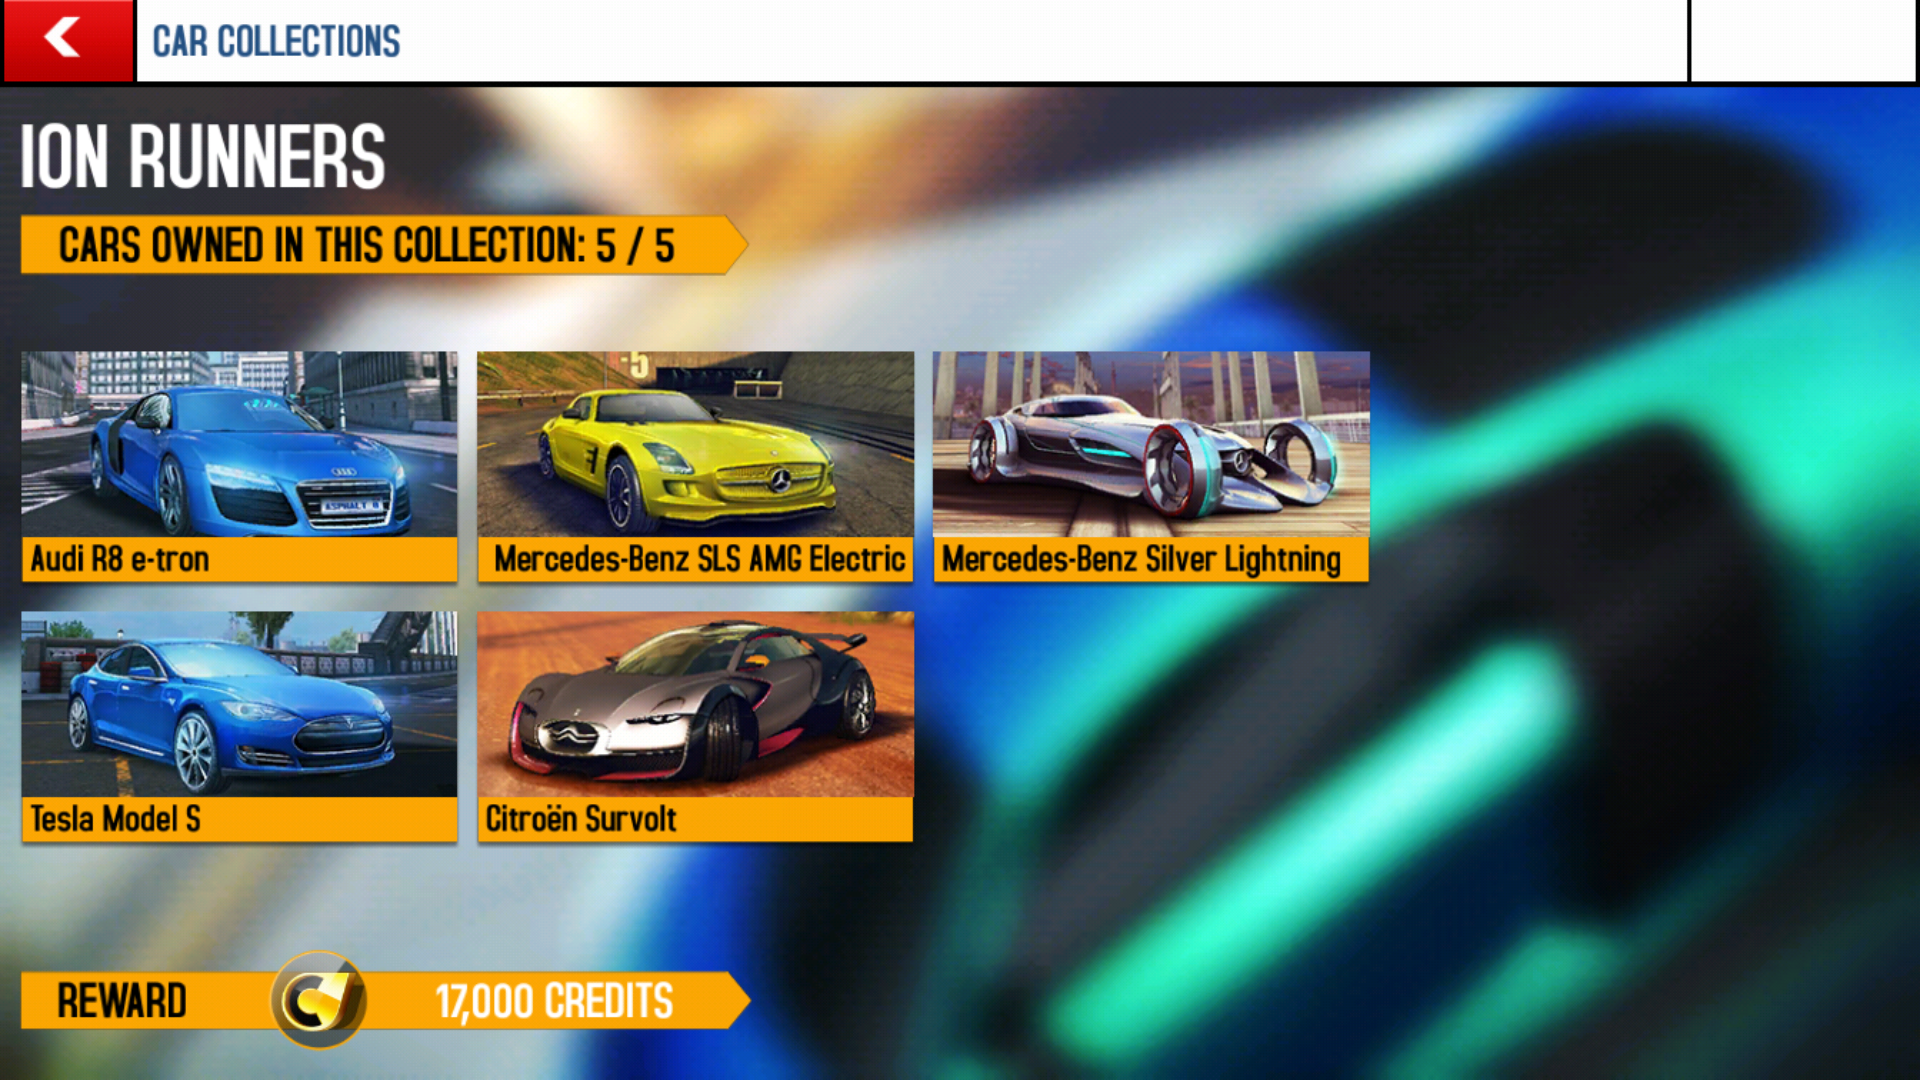 mercedes benz sls amg electric drive asphalt 8 with Collections In Asphalt 8 on Collections in Asphalt 8 furthermore Ferrari 458 Italia  MegaPost moreover List Of All Cars Of Asphalt 8 Airborne additionally All Cars List moreover Watch.